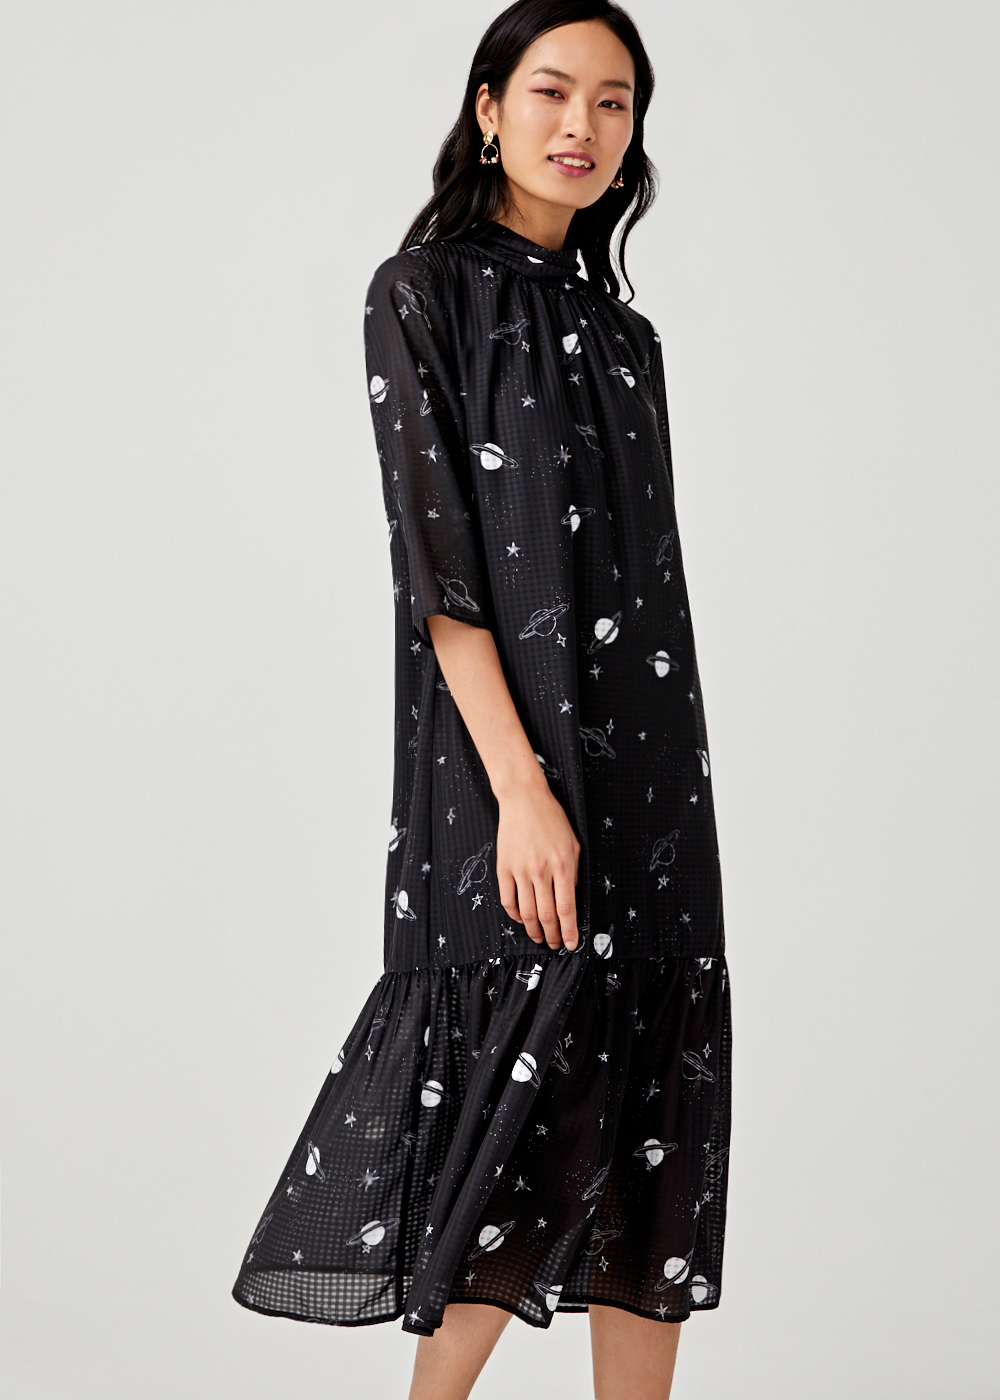 Gretchen Drop Hem Midi Dress in Galaxis Jam